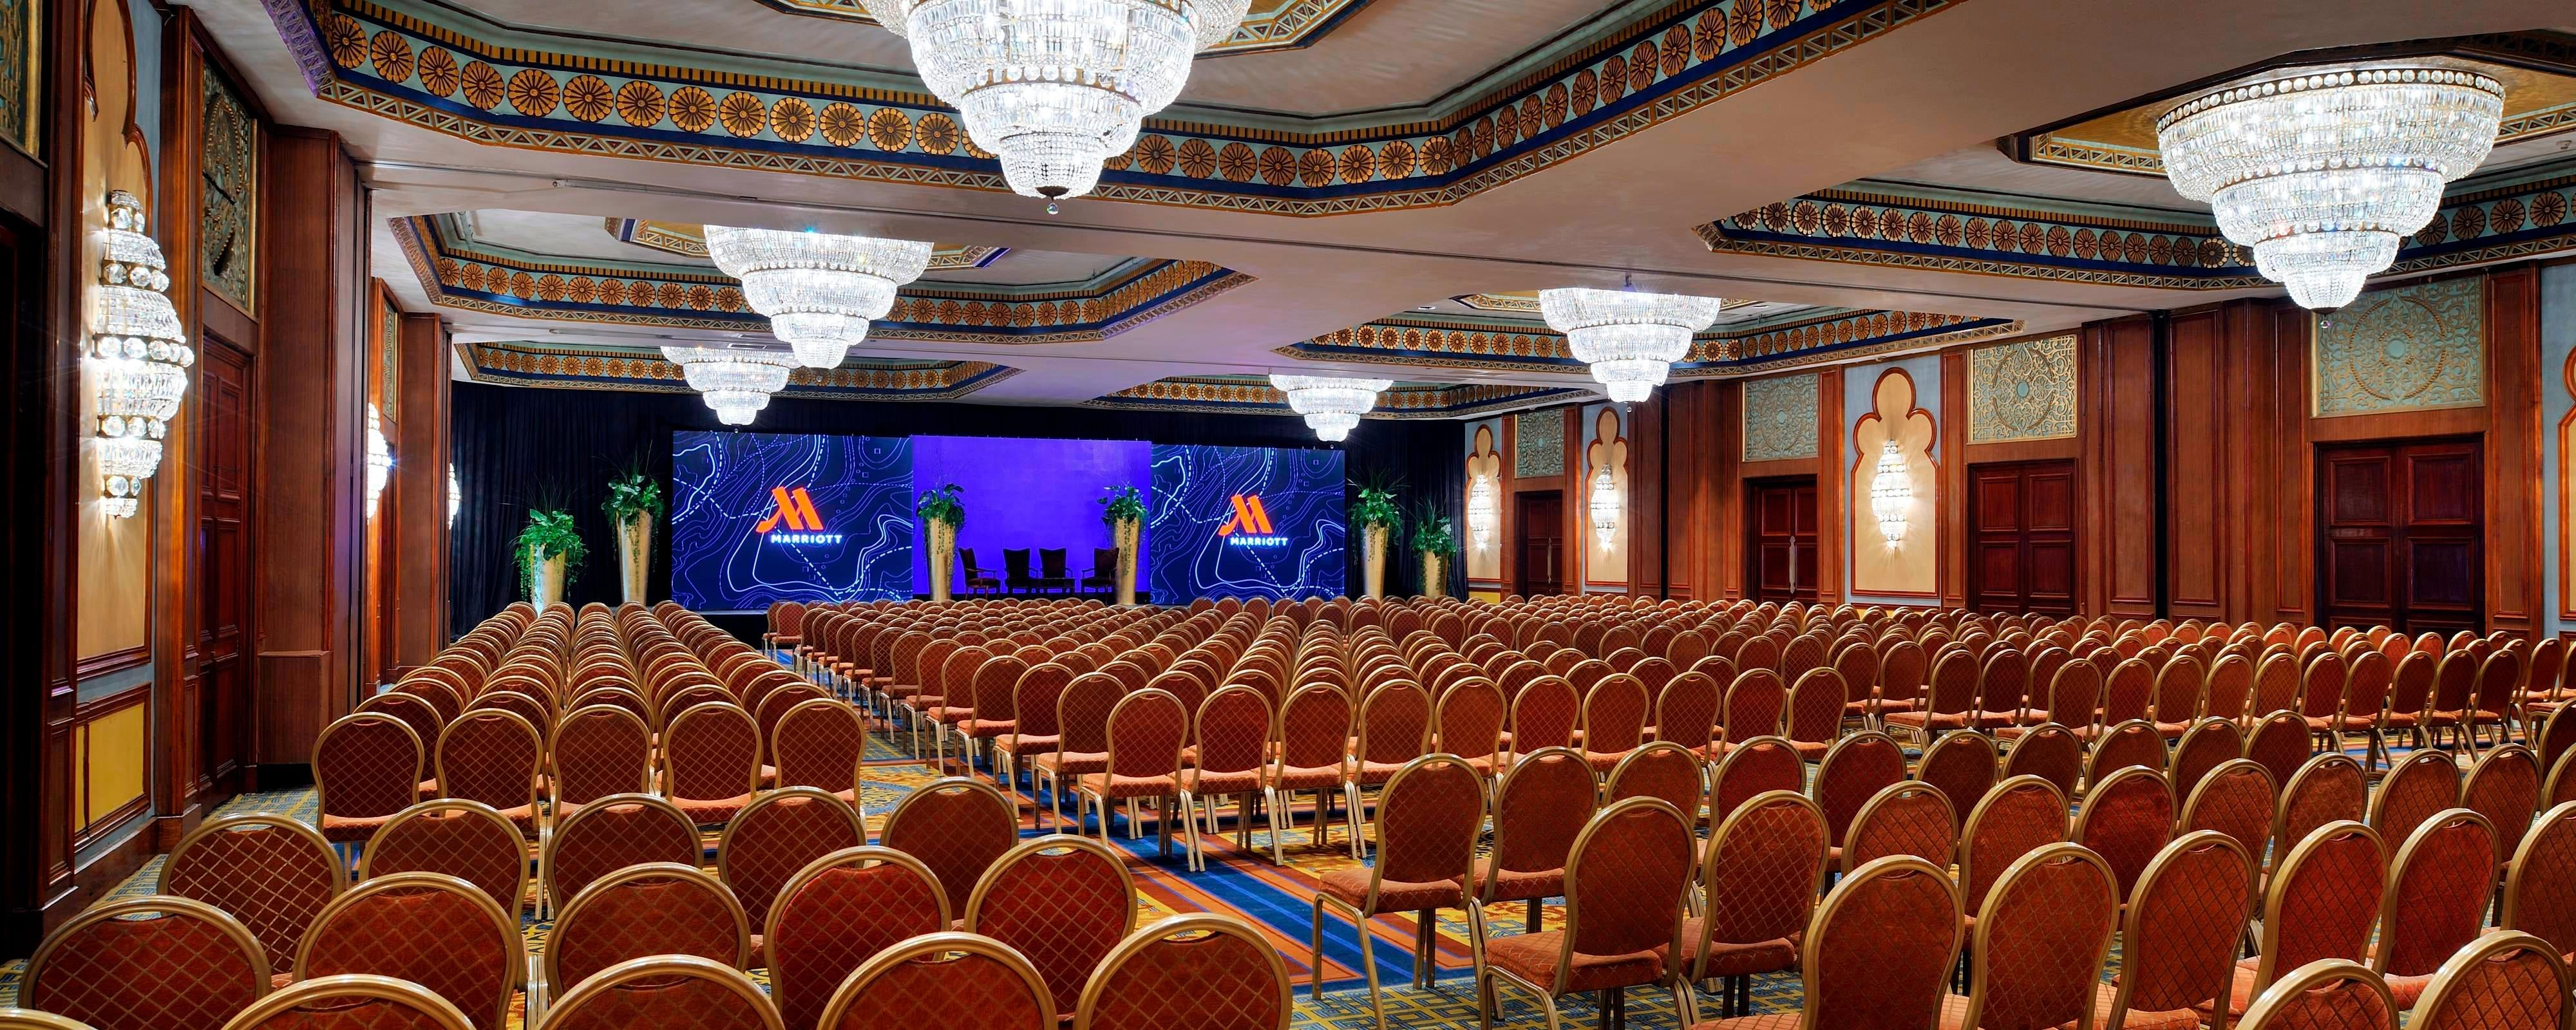 Aida Theater Cairo Marriott Hotel